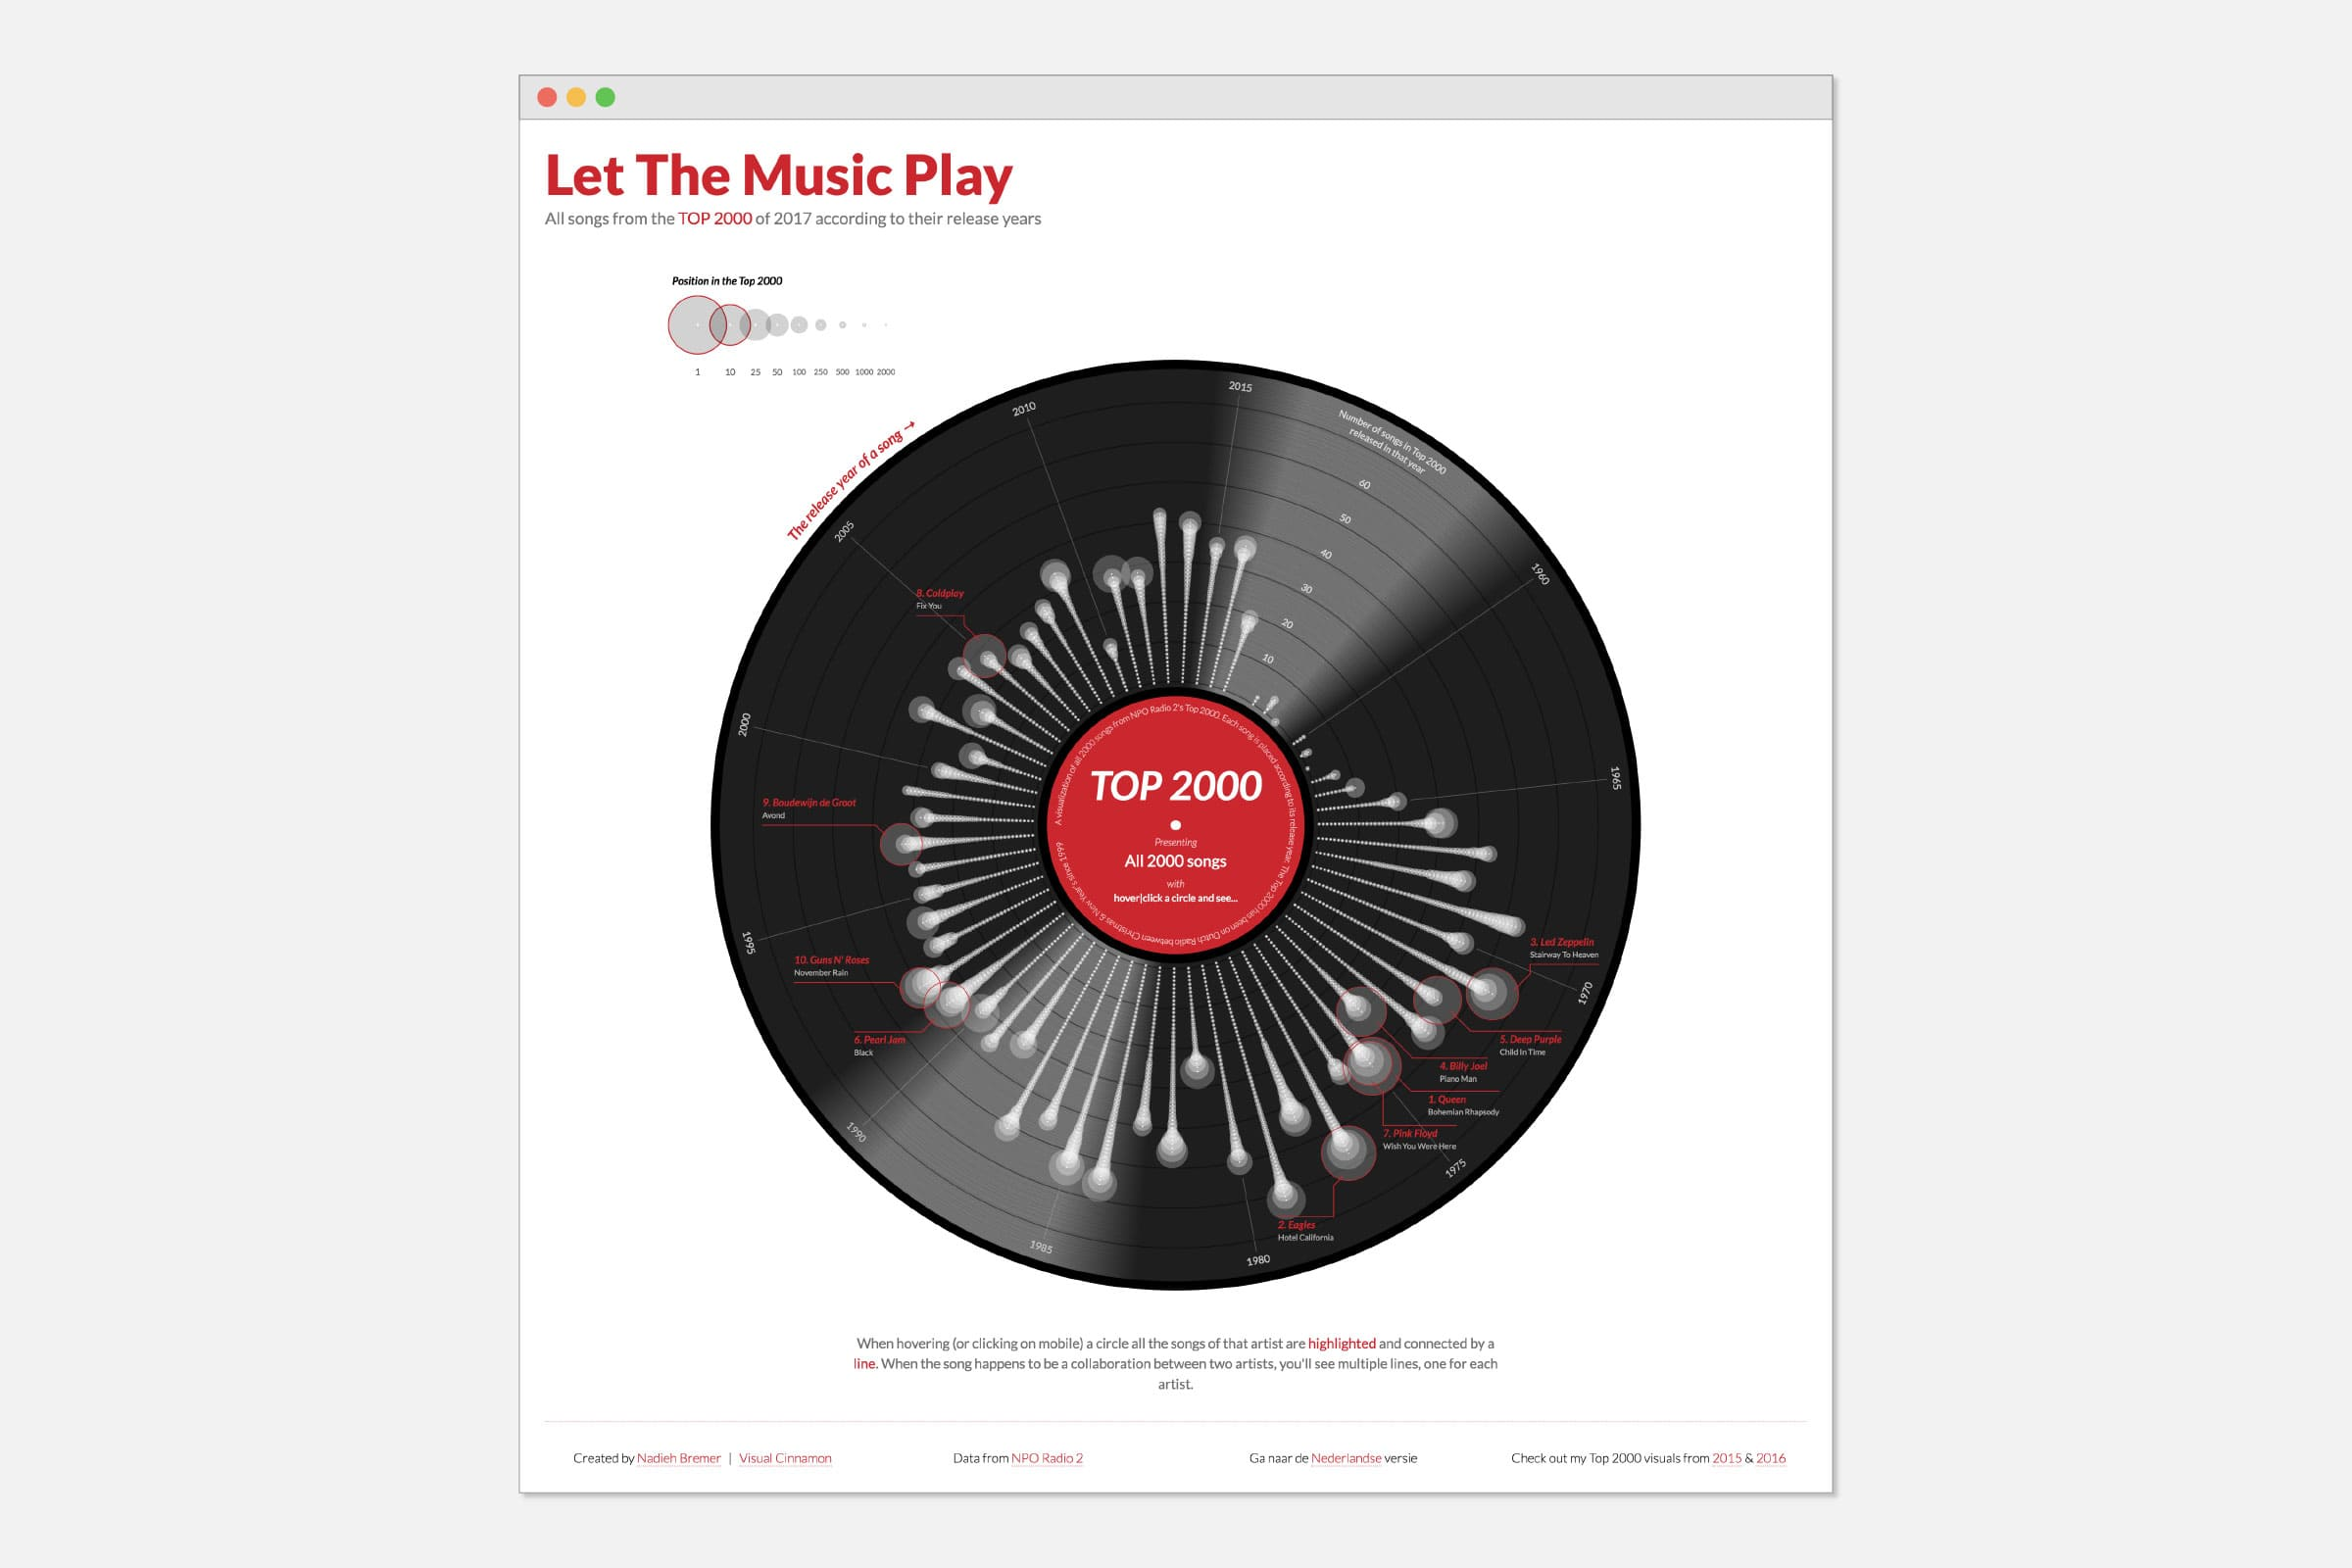 The final result of 'Let the Music Play'